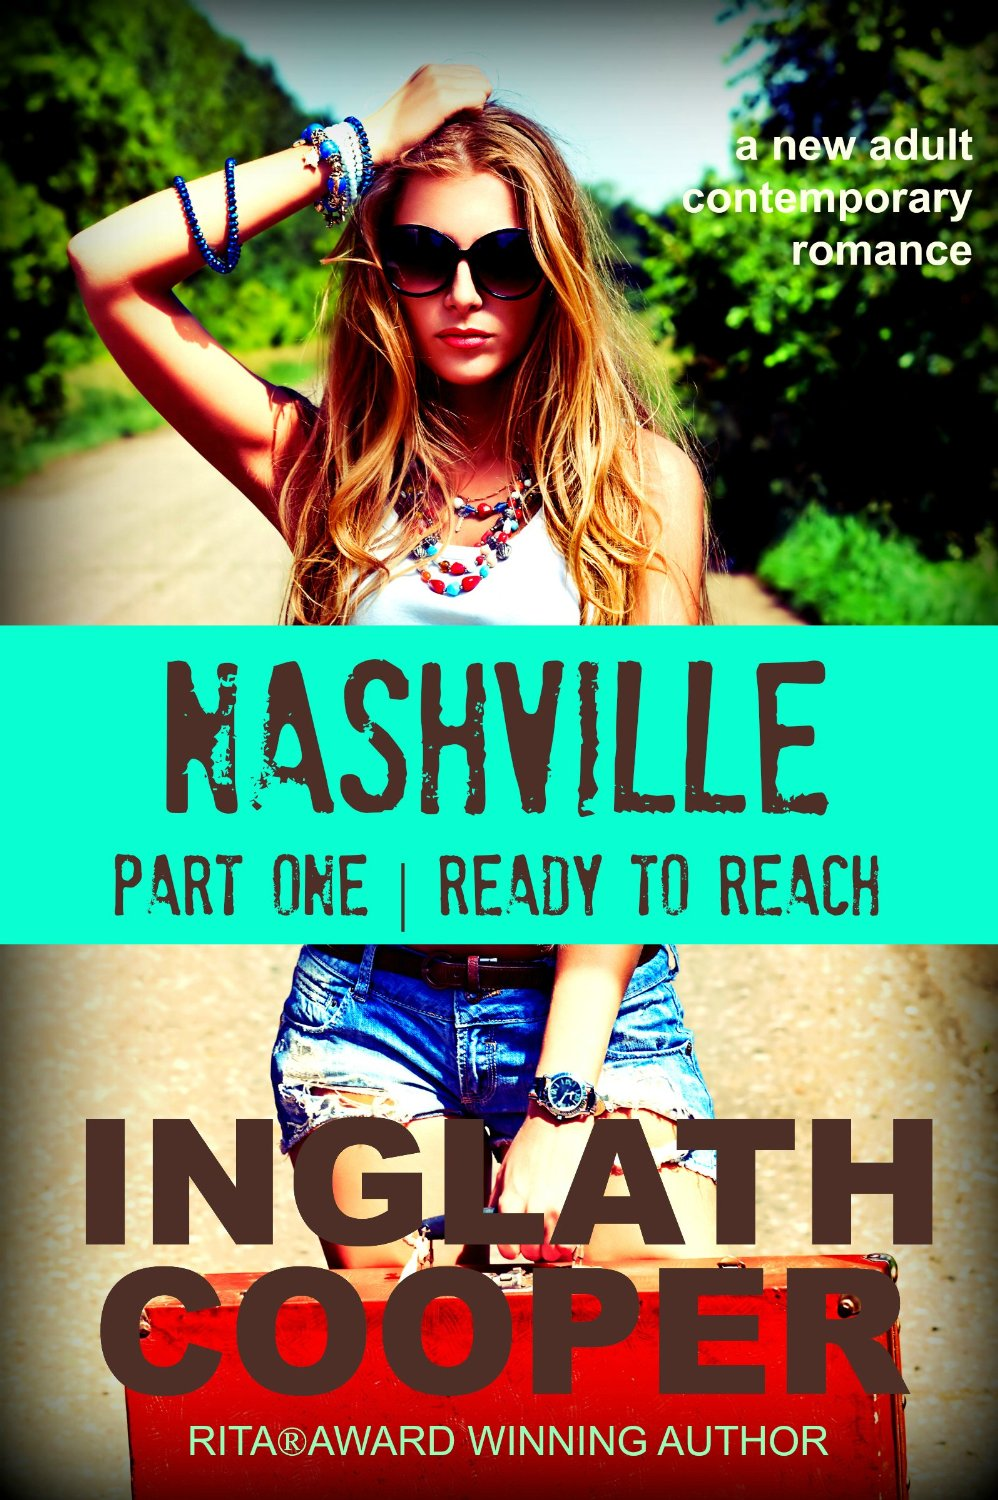 Review of Nashville by Inglath Cooper